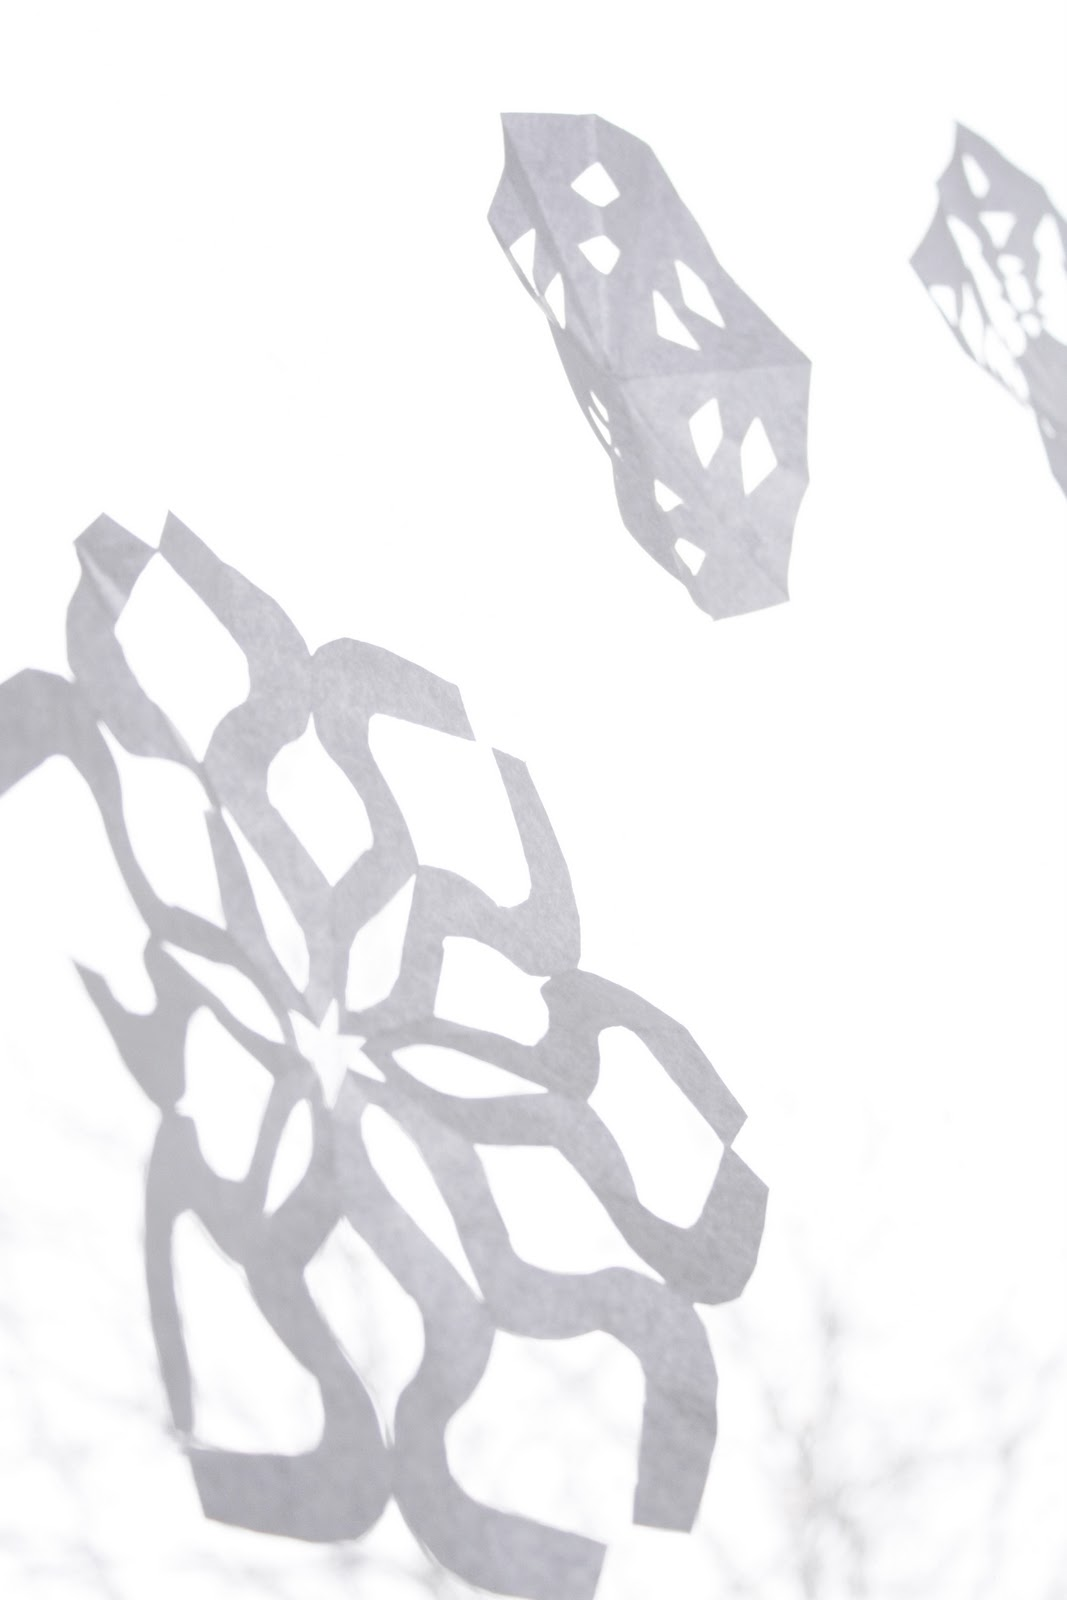 Six-Sided Paper Snowflakes